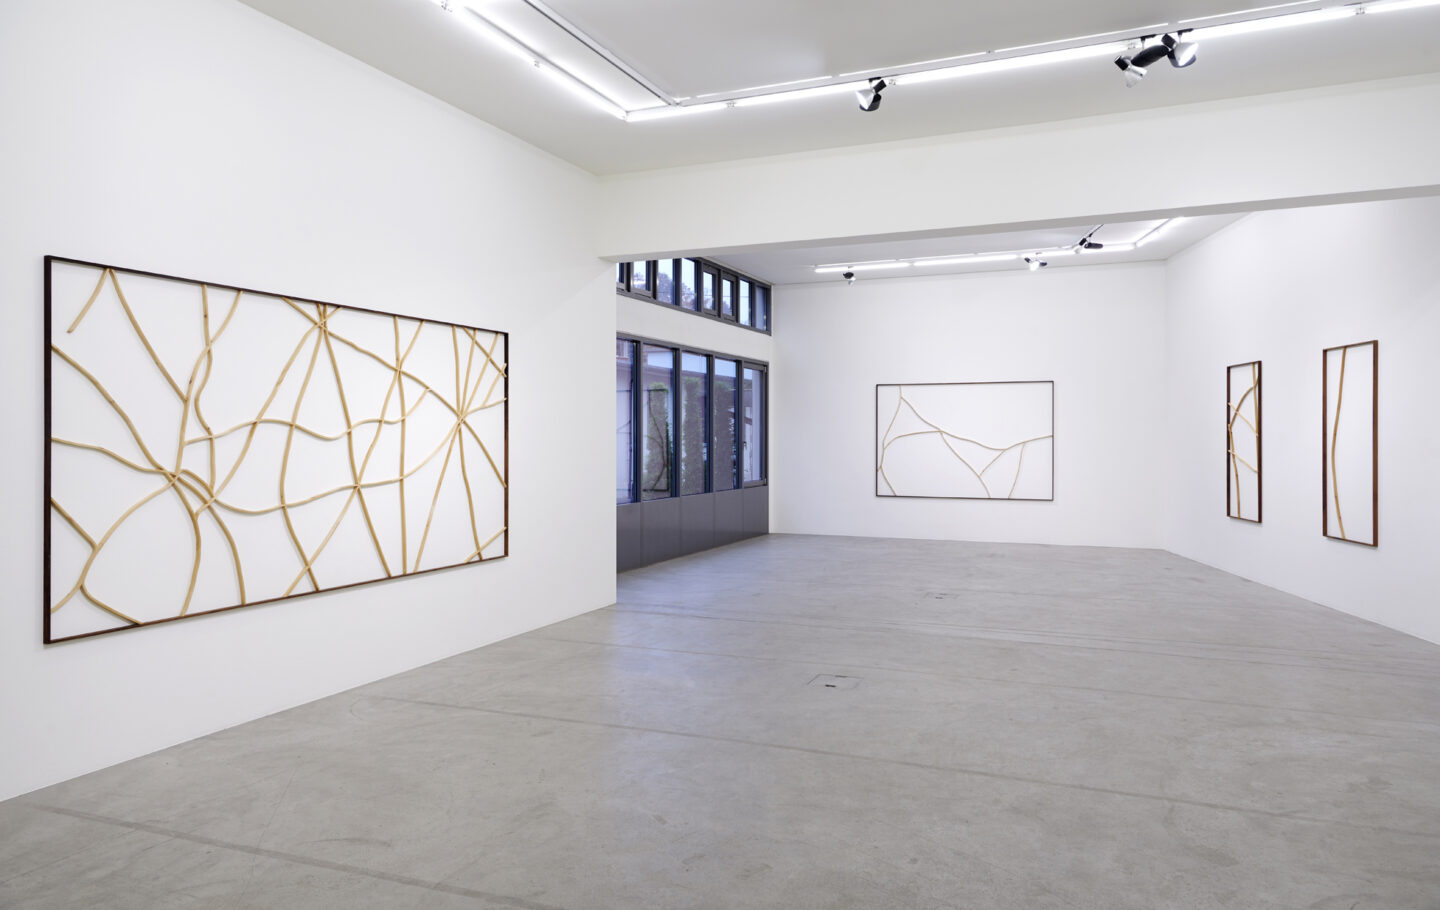 Exhibtion View Mirko Baselgia Soloshow «Habitat» at Galerie Urs Meile, Luzern, 2018 / Courtesy: the artist and Galerie Urs Meile